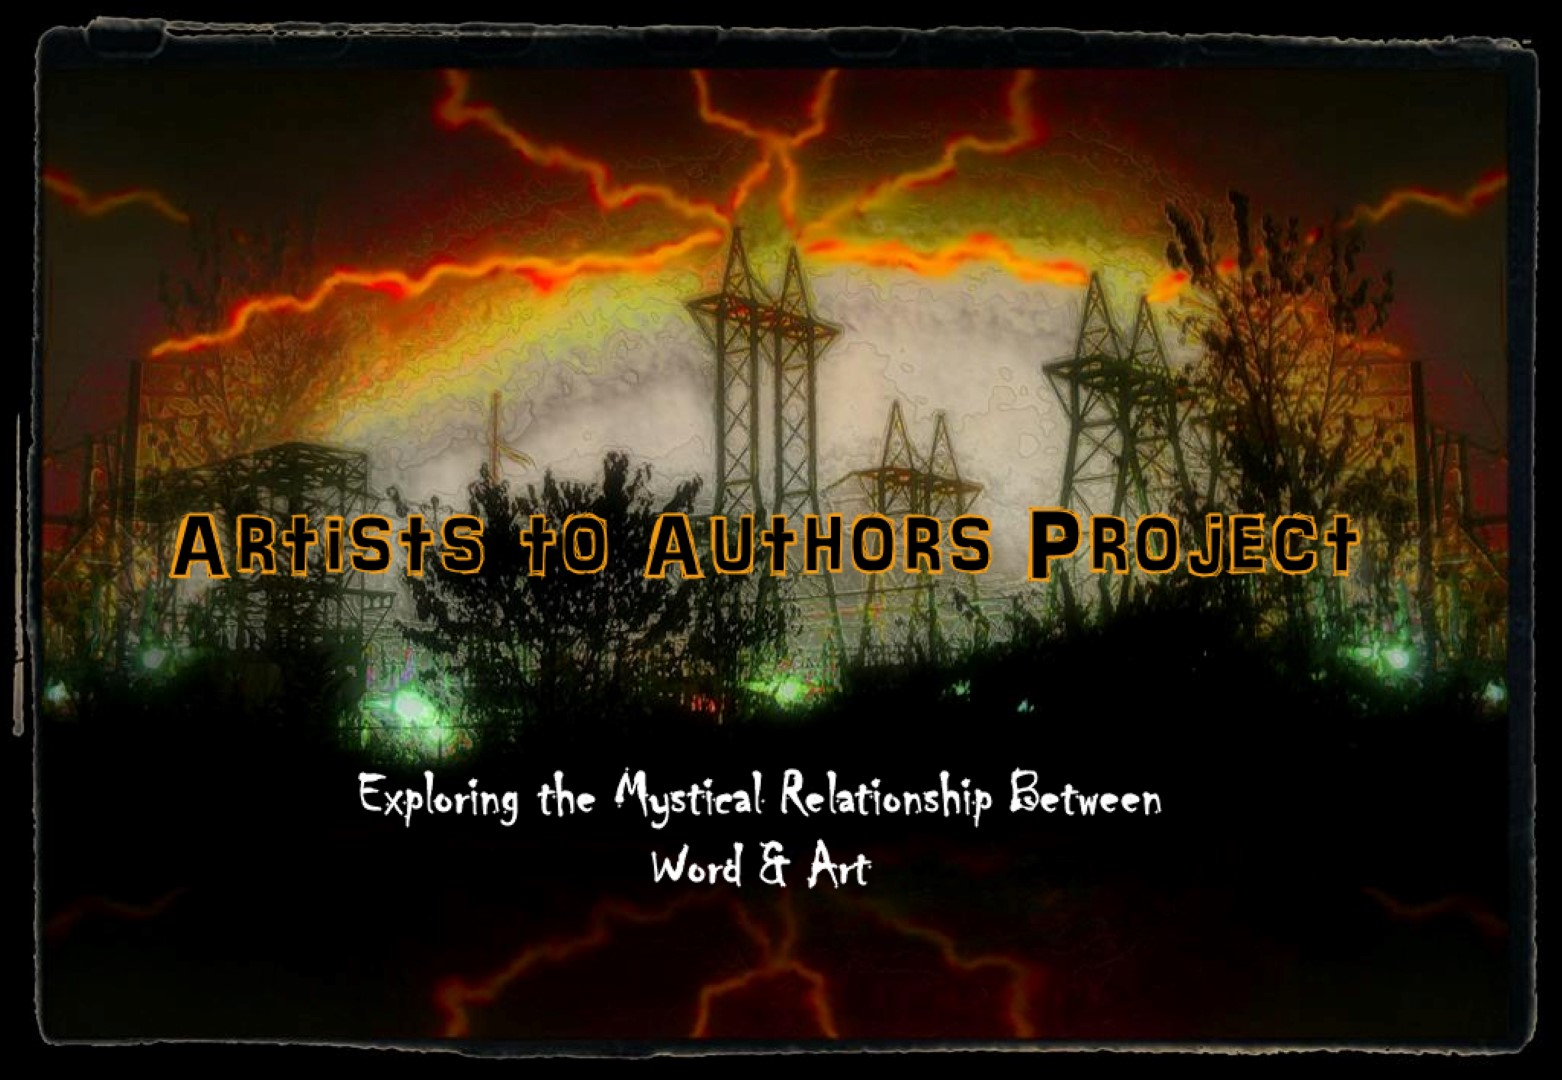 The Artists to Authors Project